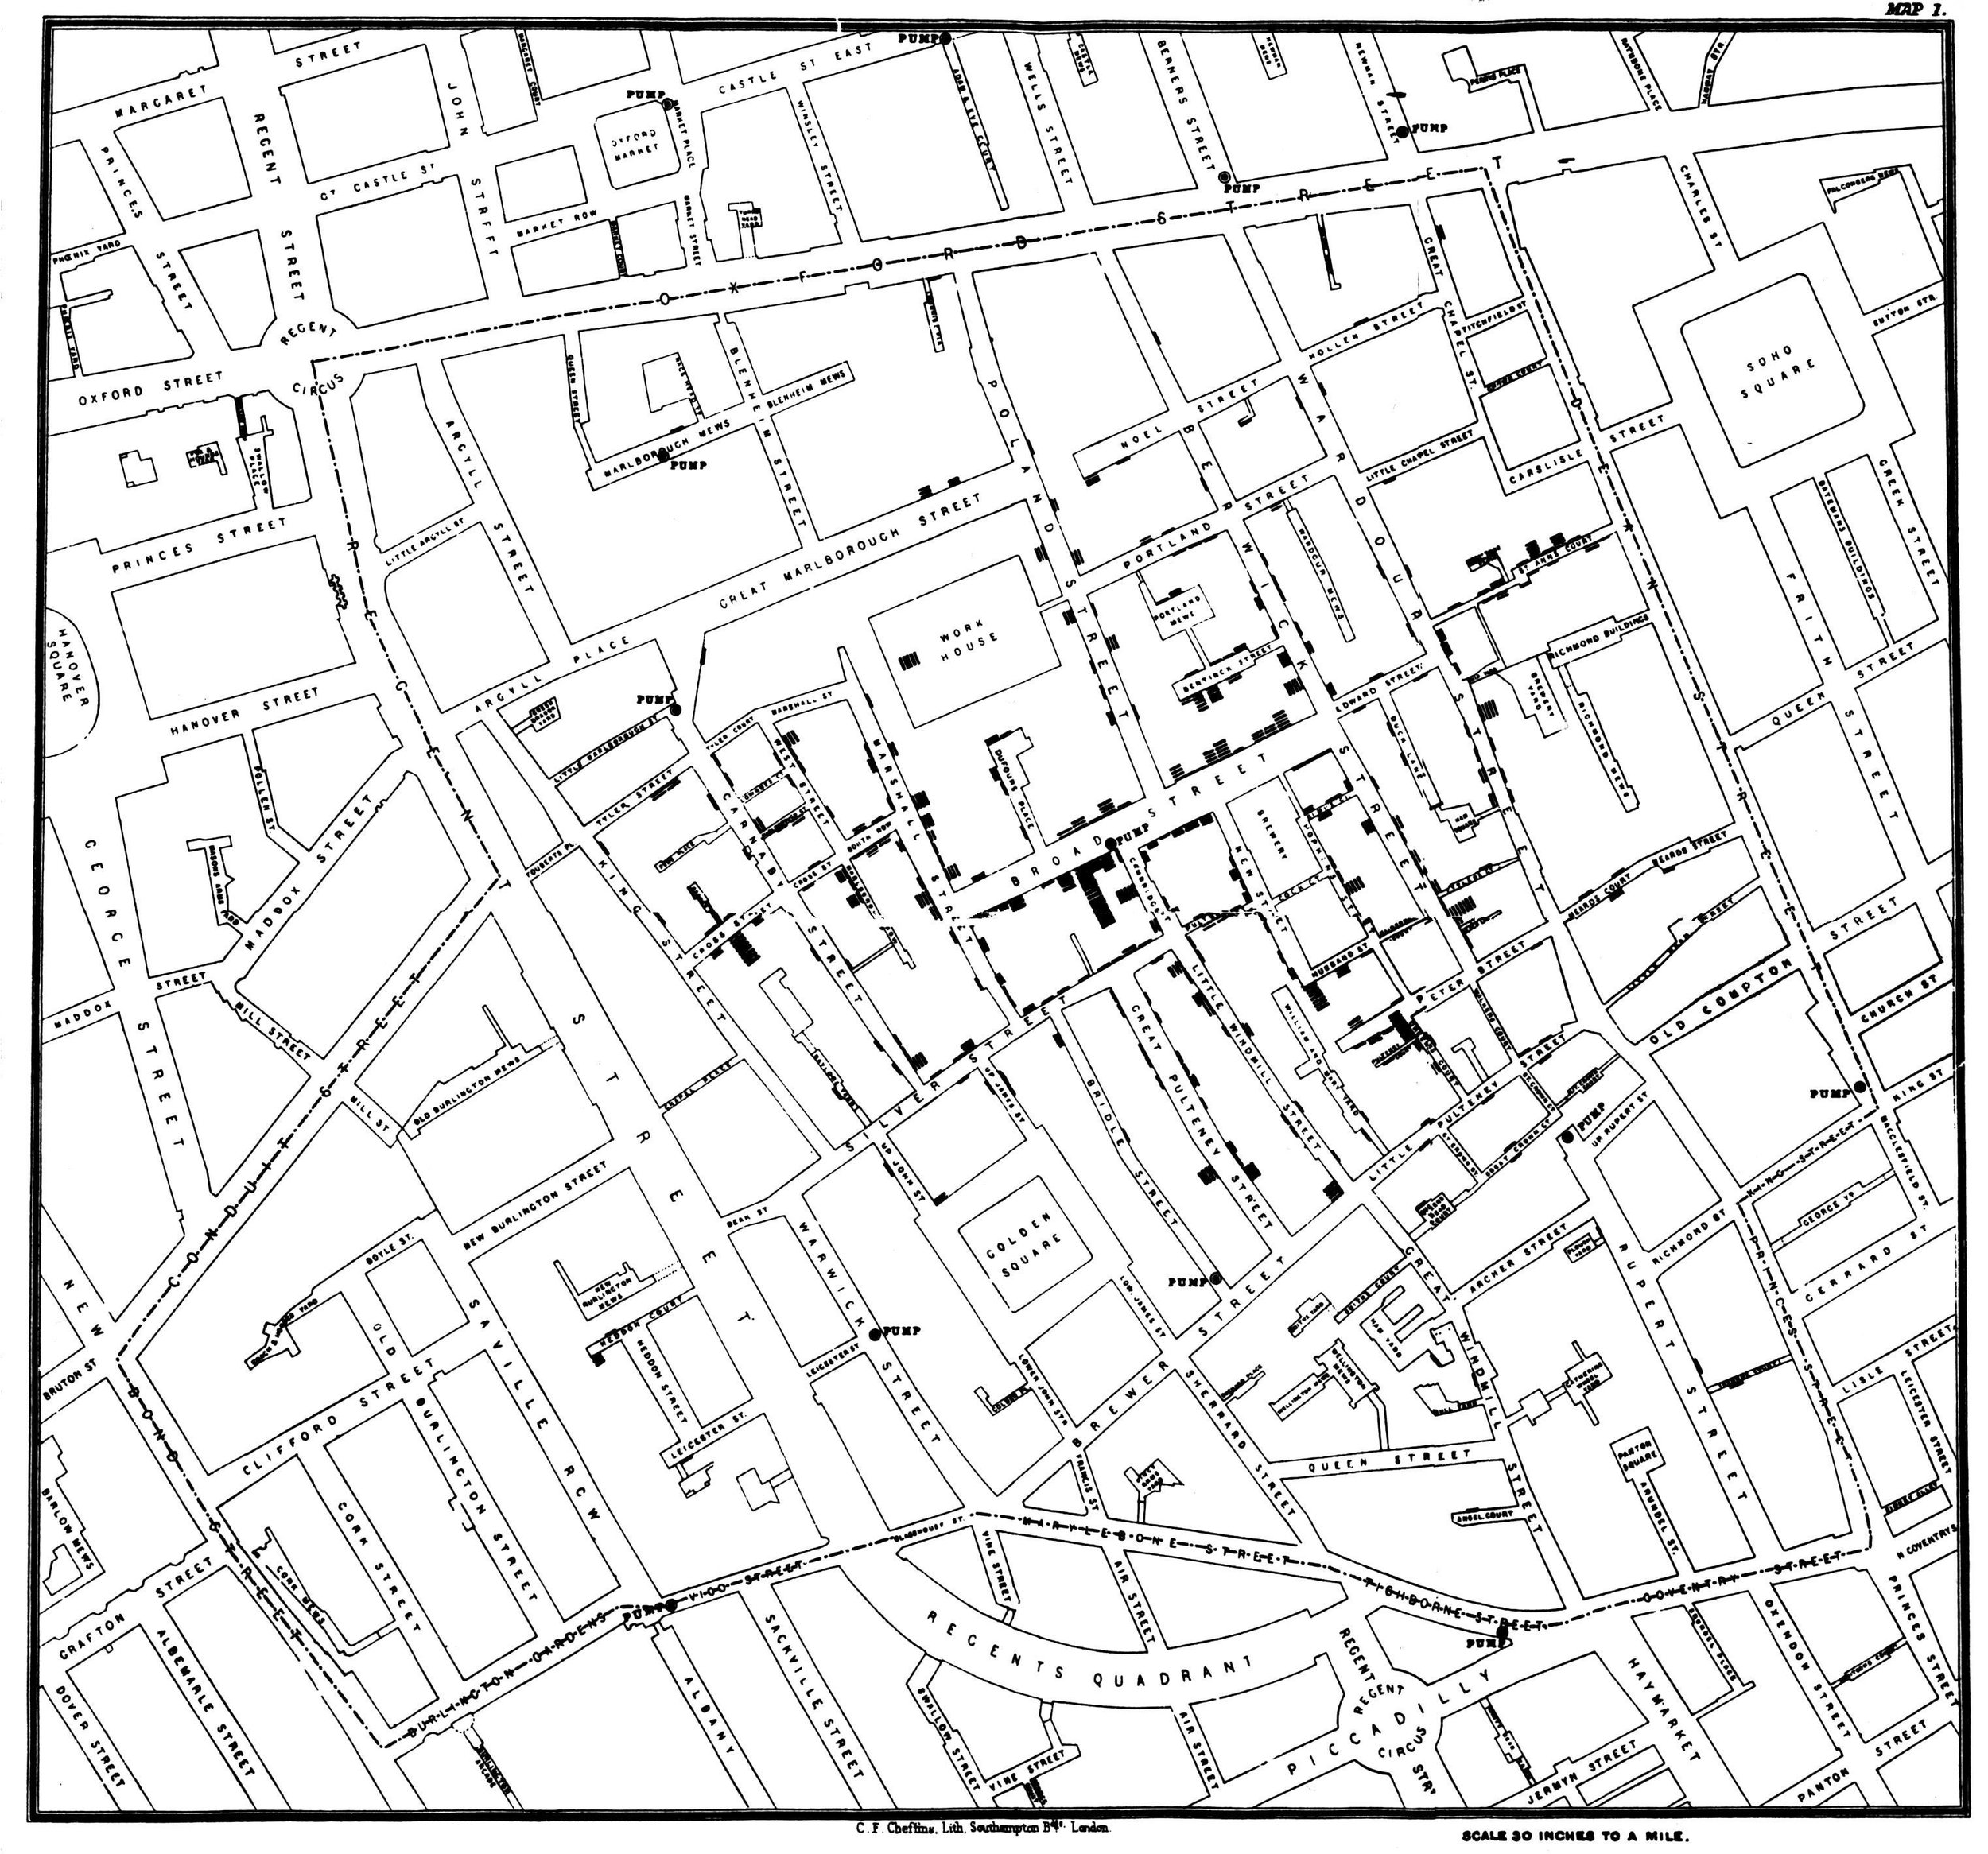 From: John Snow - On the Mode of Communication of Cholera, 1855